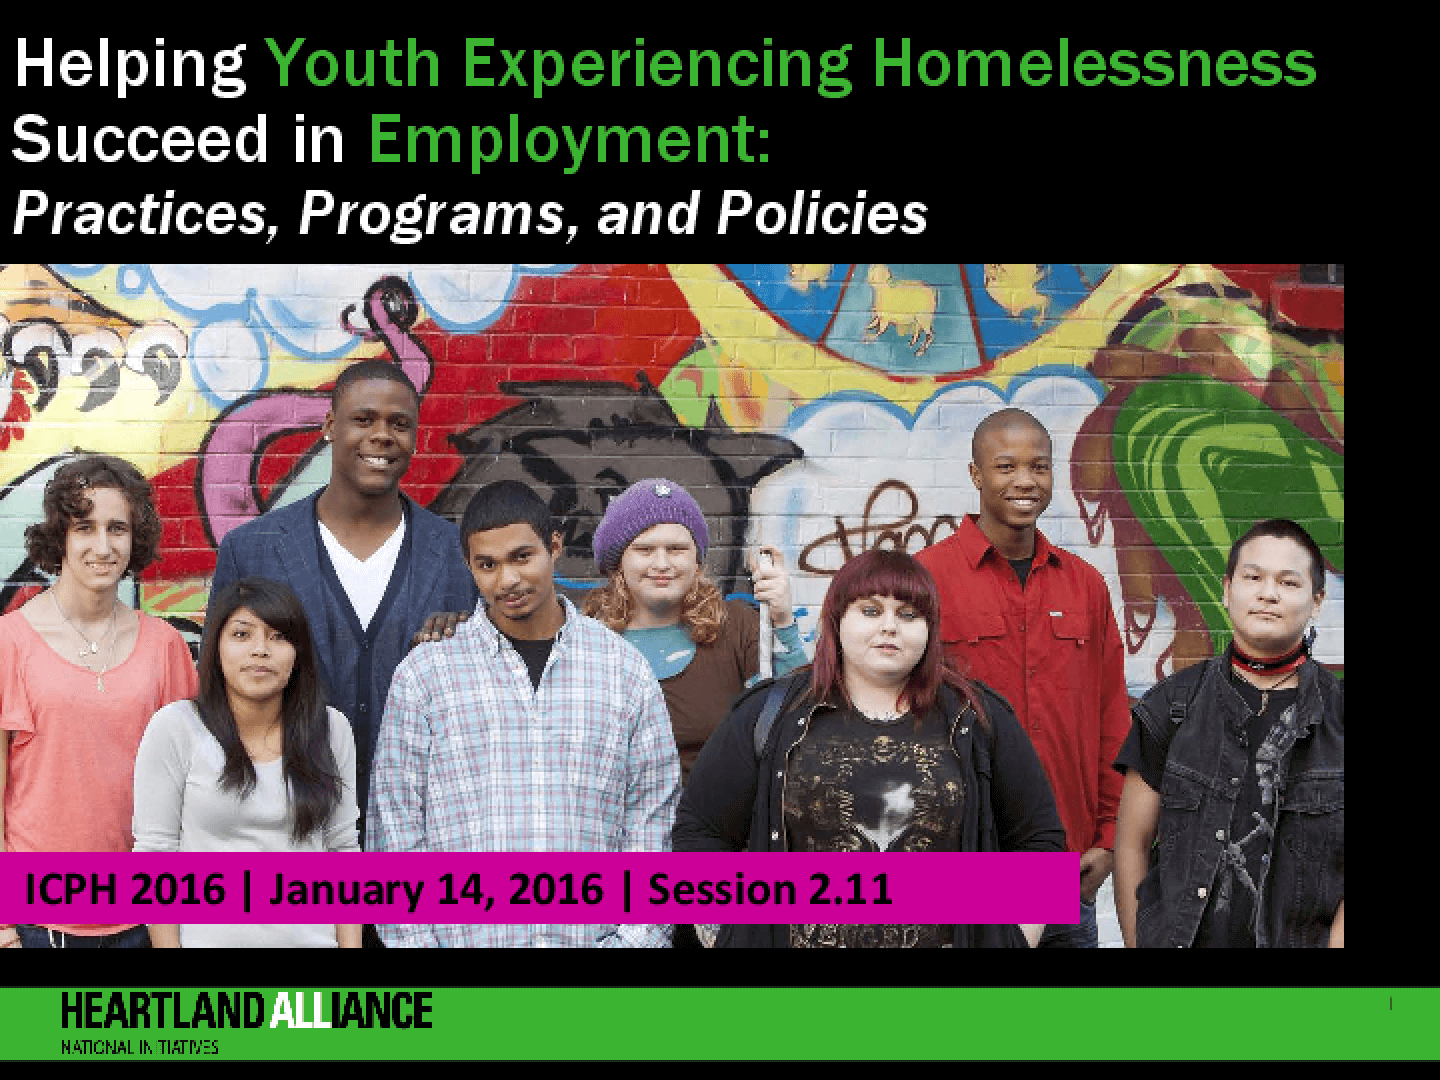 Helping Youth Experiencing Homelessness Succeed in Employment: Practices, Programs, and Policies